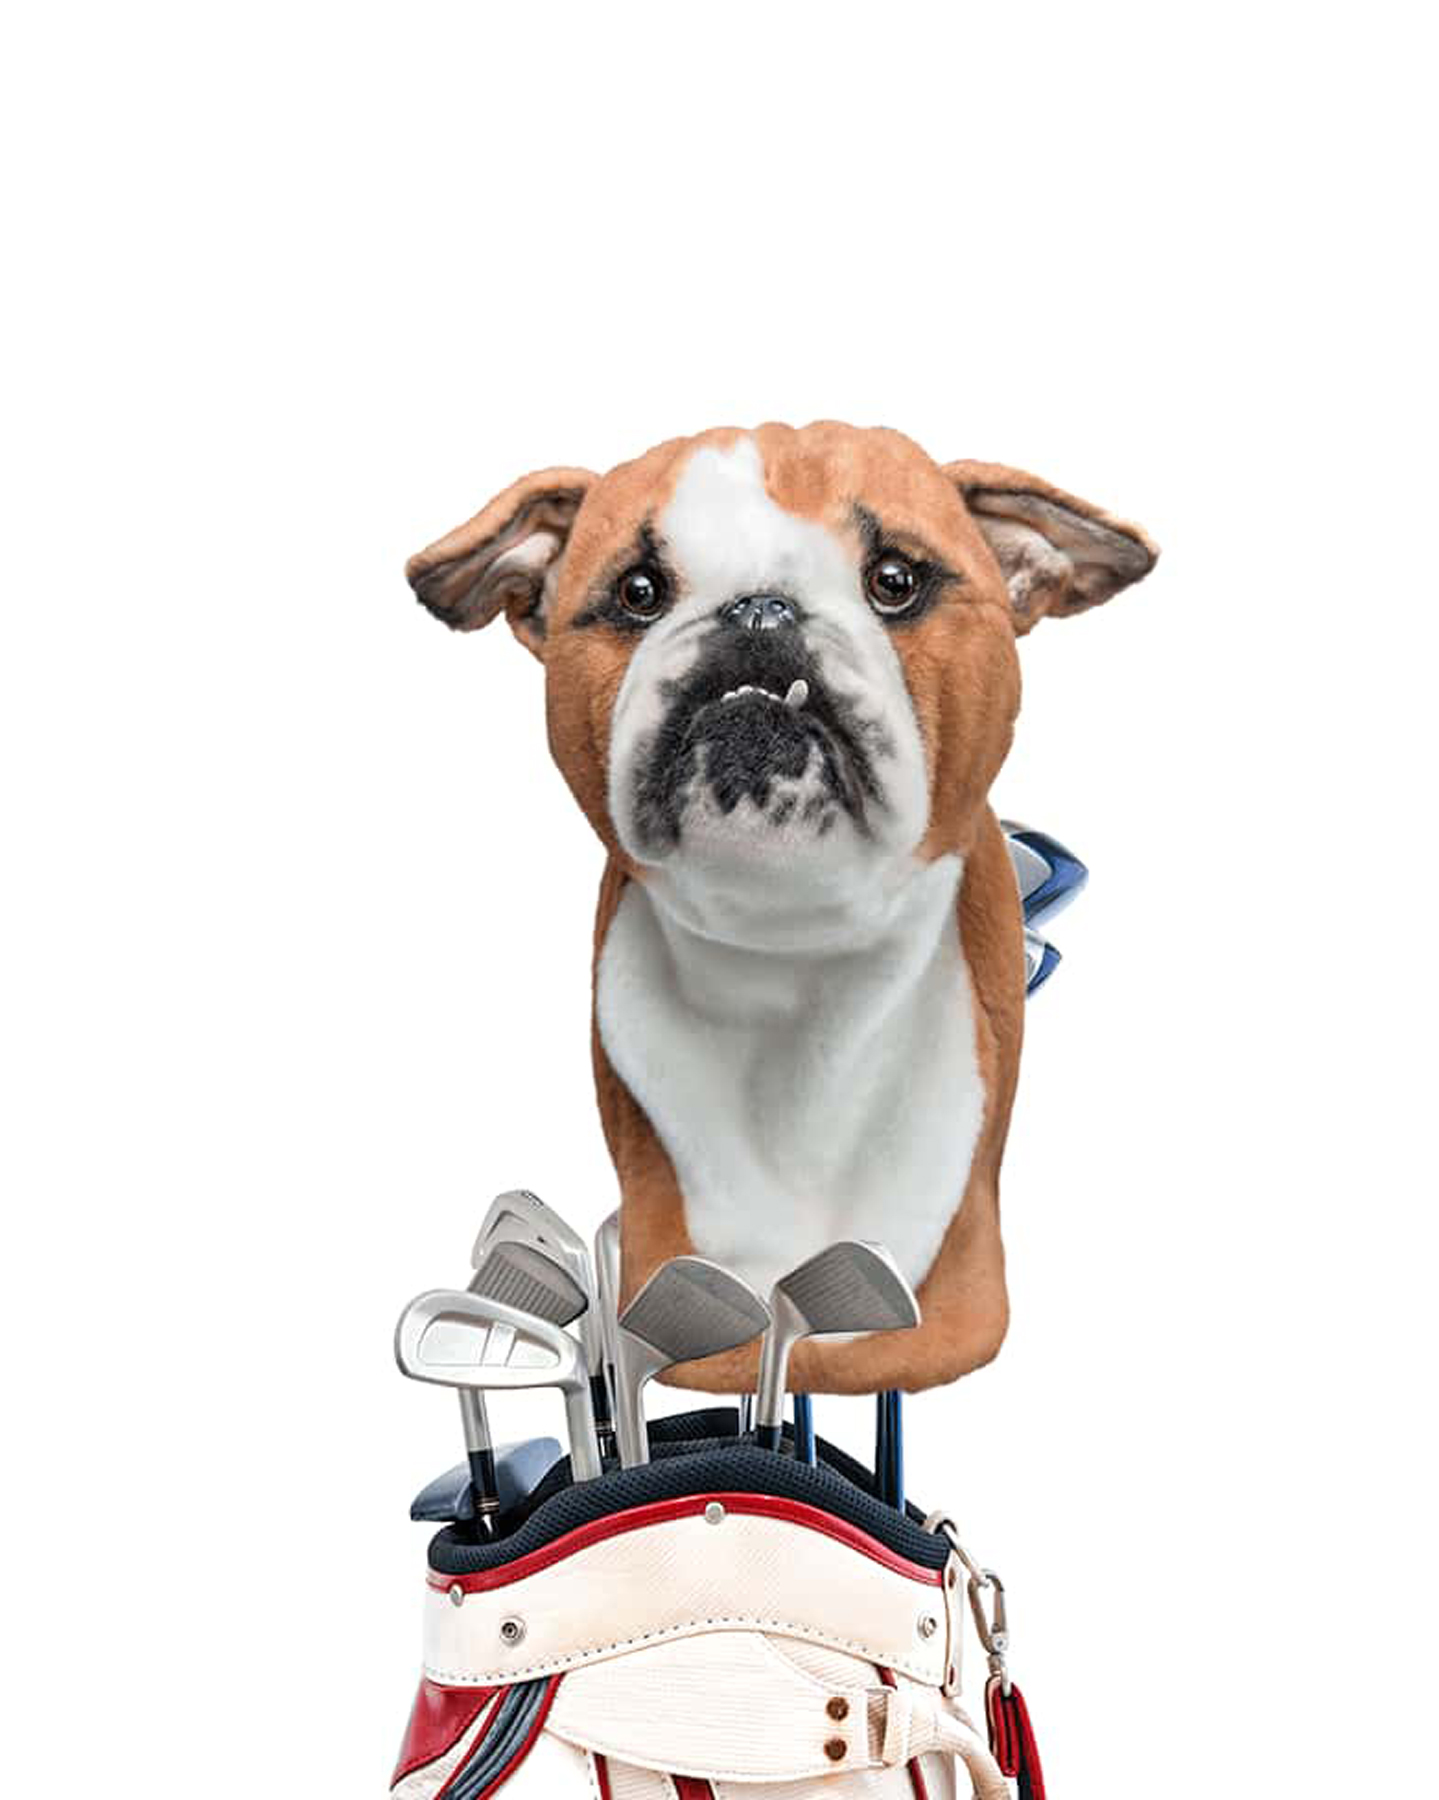 Funny gifts for men - Personalized PetGolf Club Headcovers